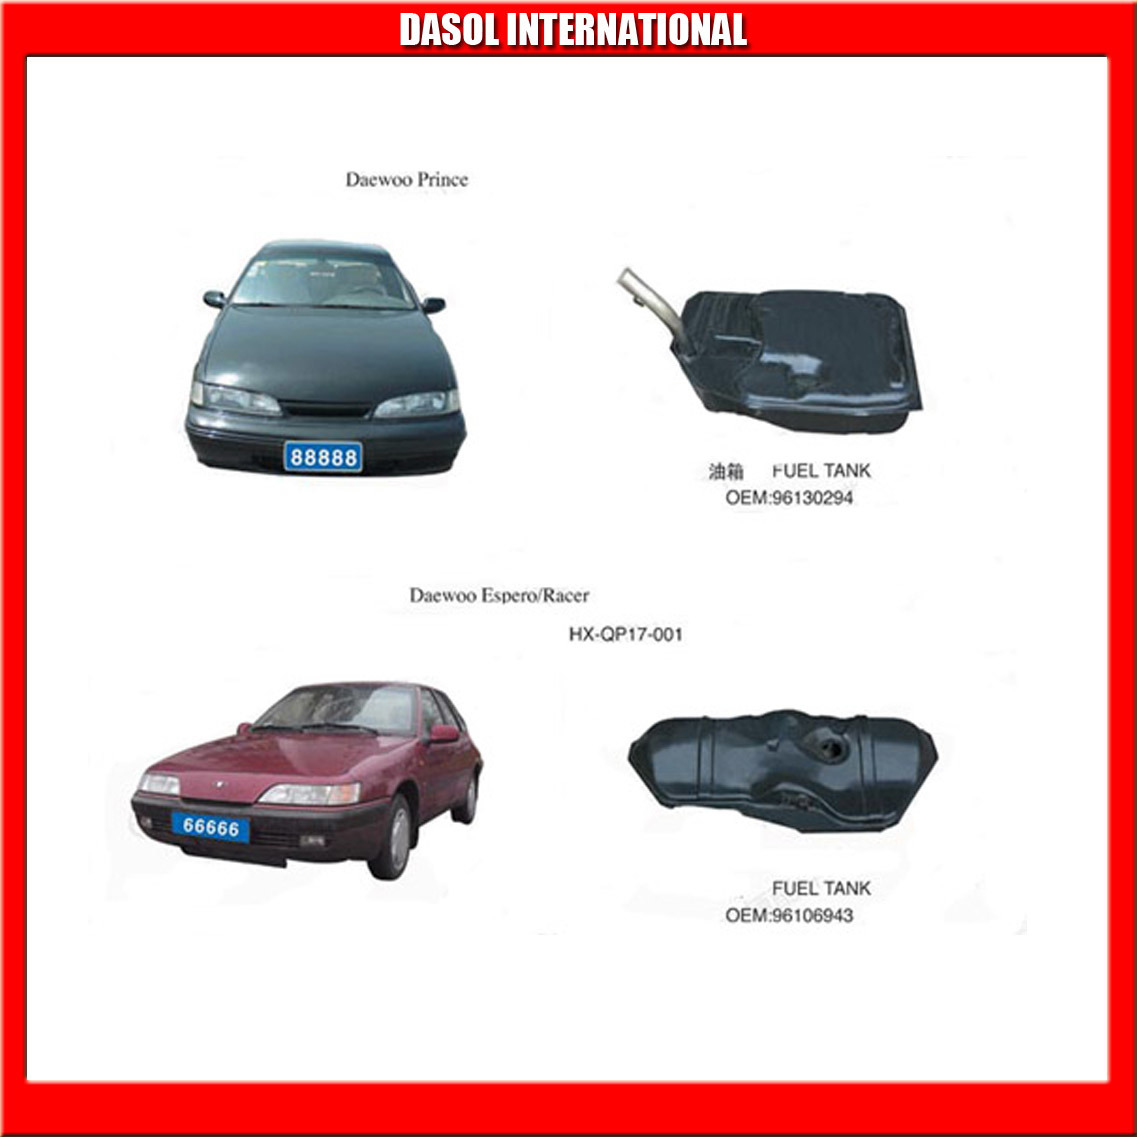 hight resolution of car fuel tank 96130294 for daewoo prince